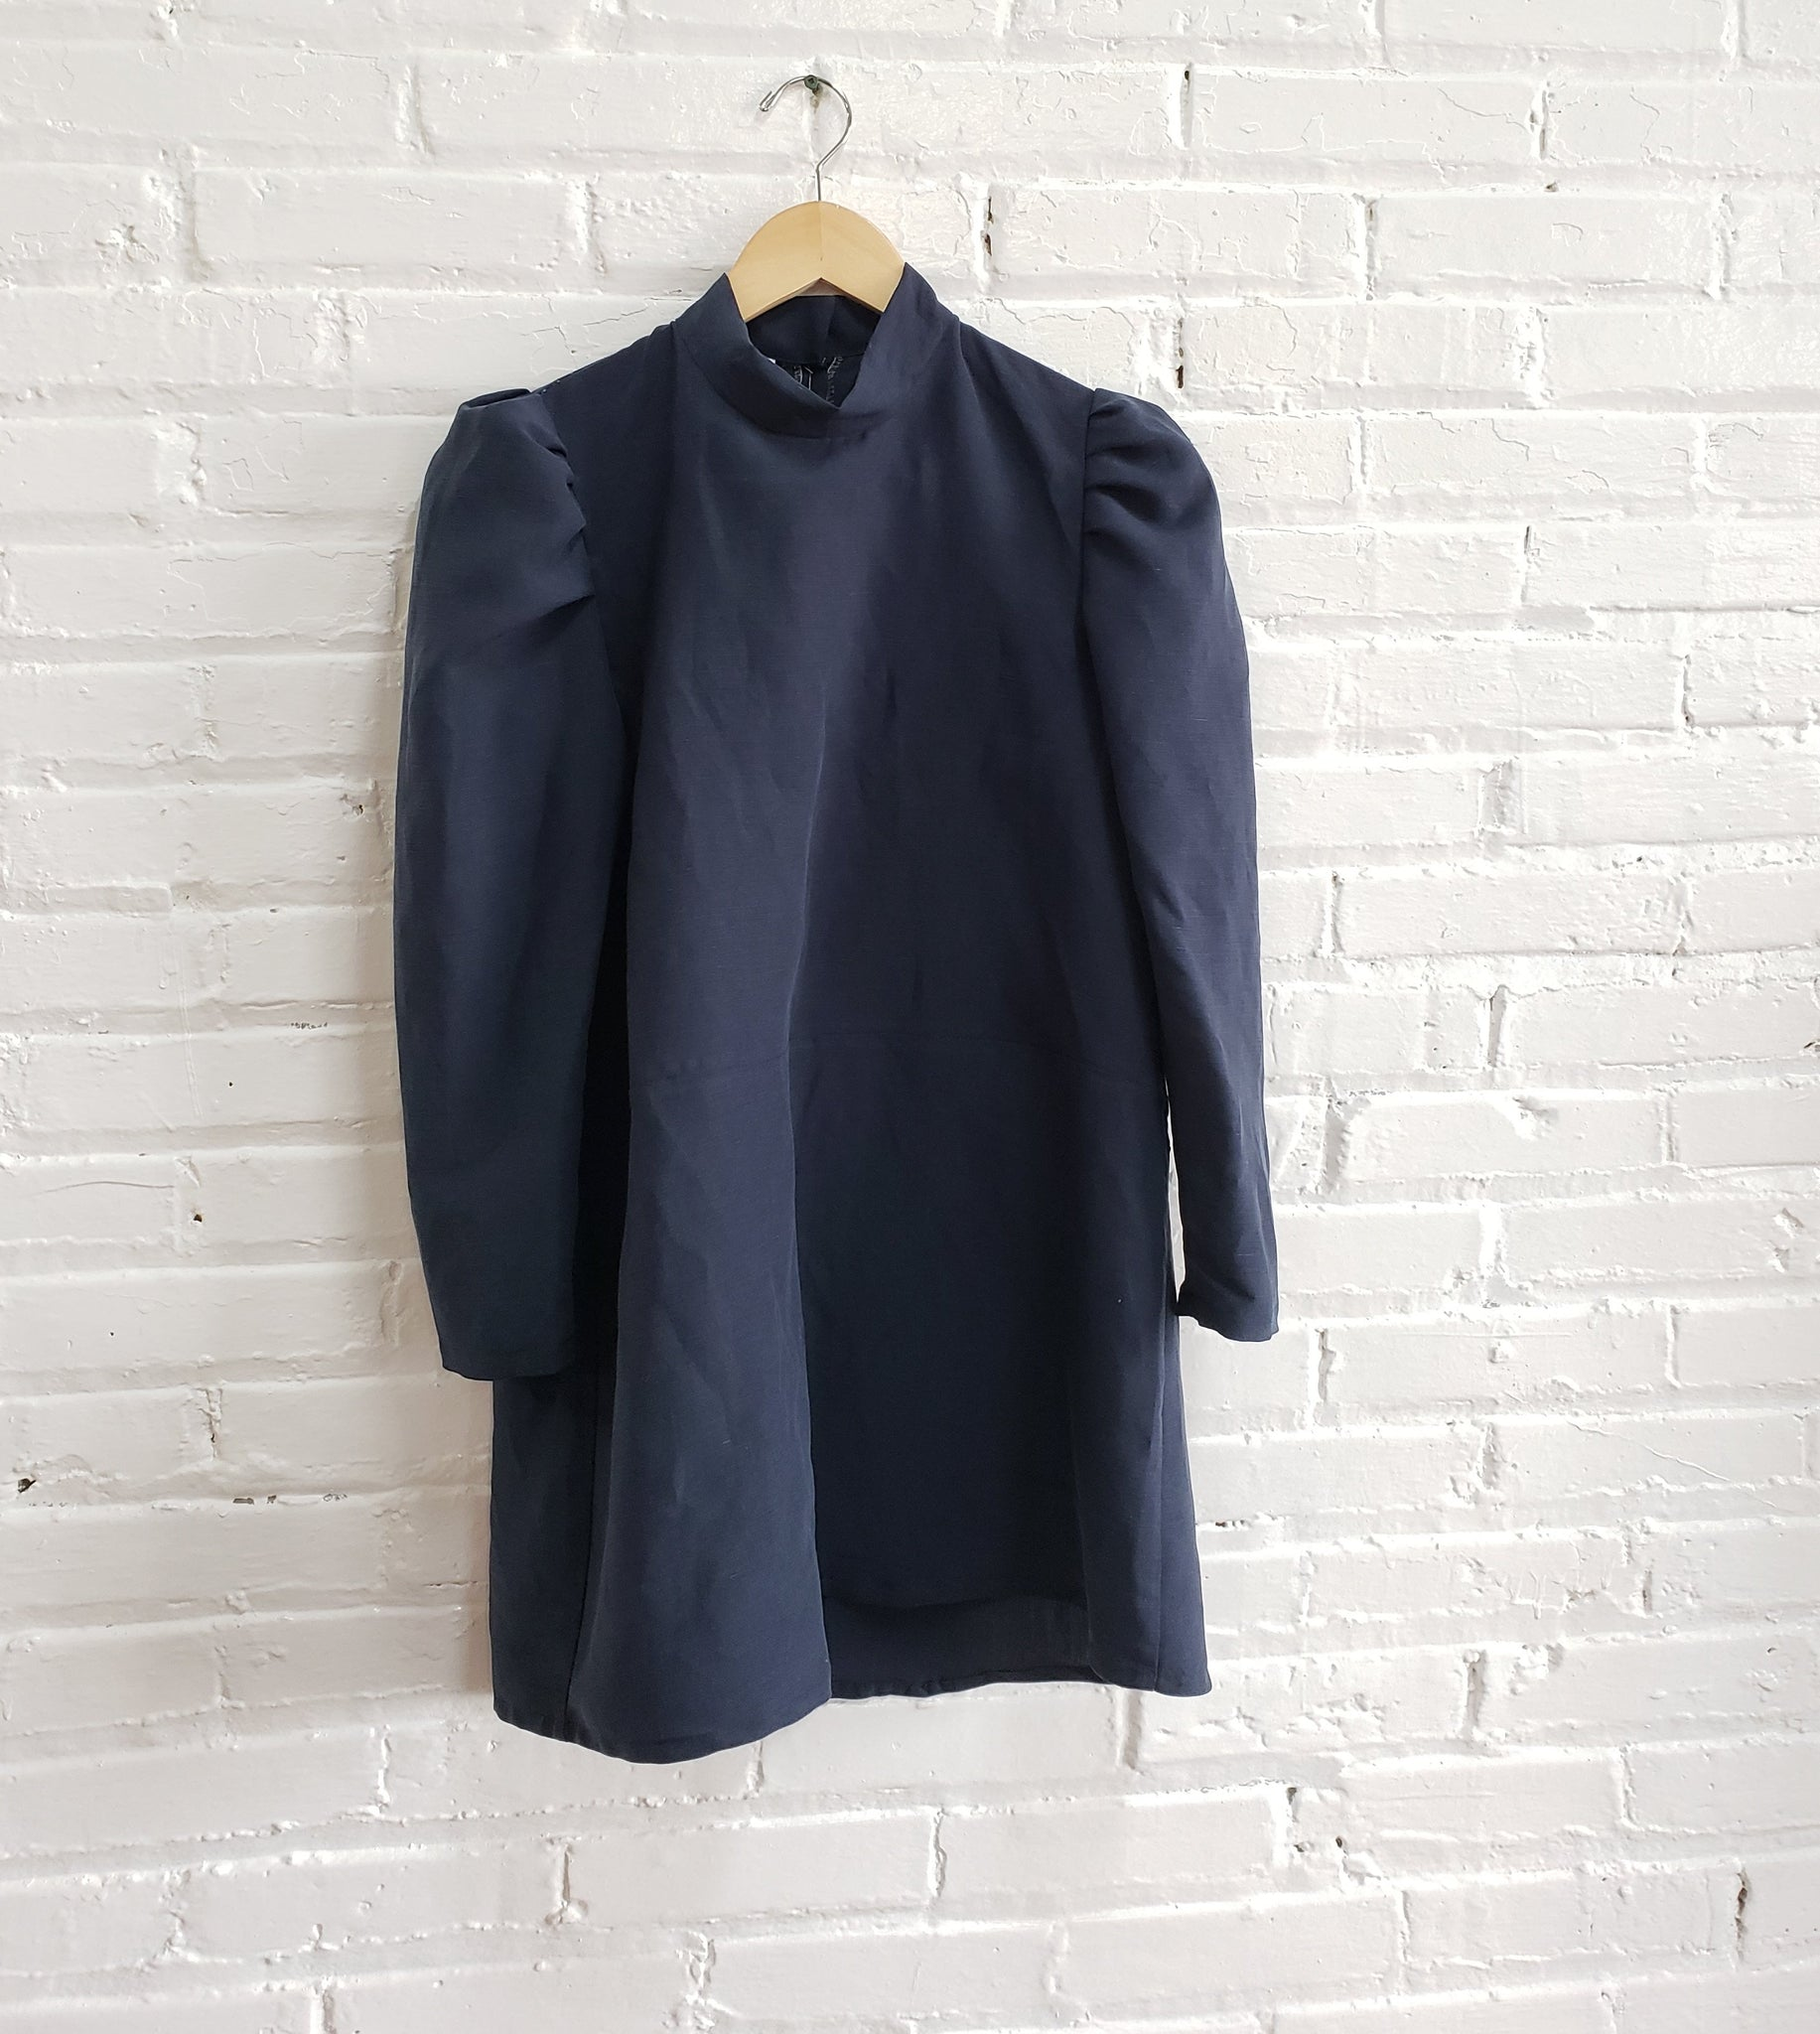 navy blue mini dress with puffy sleeves and mock neck hanging on white brick wall